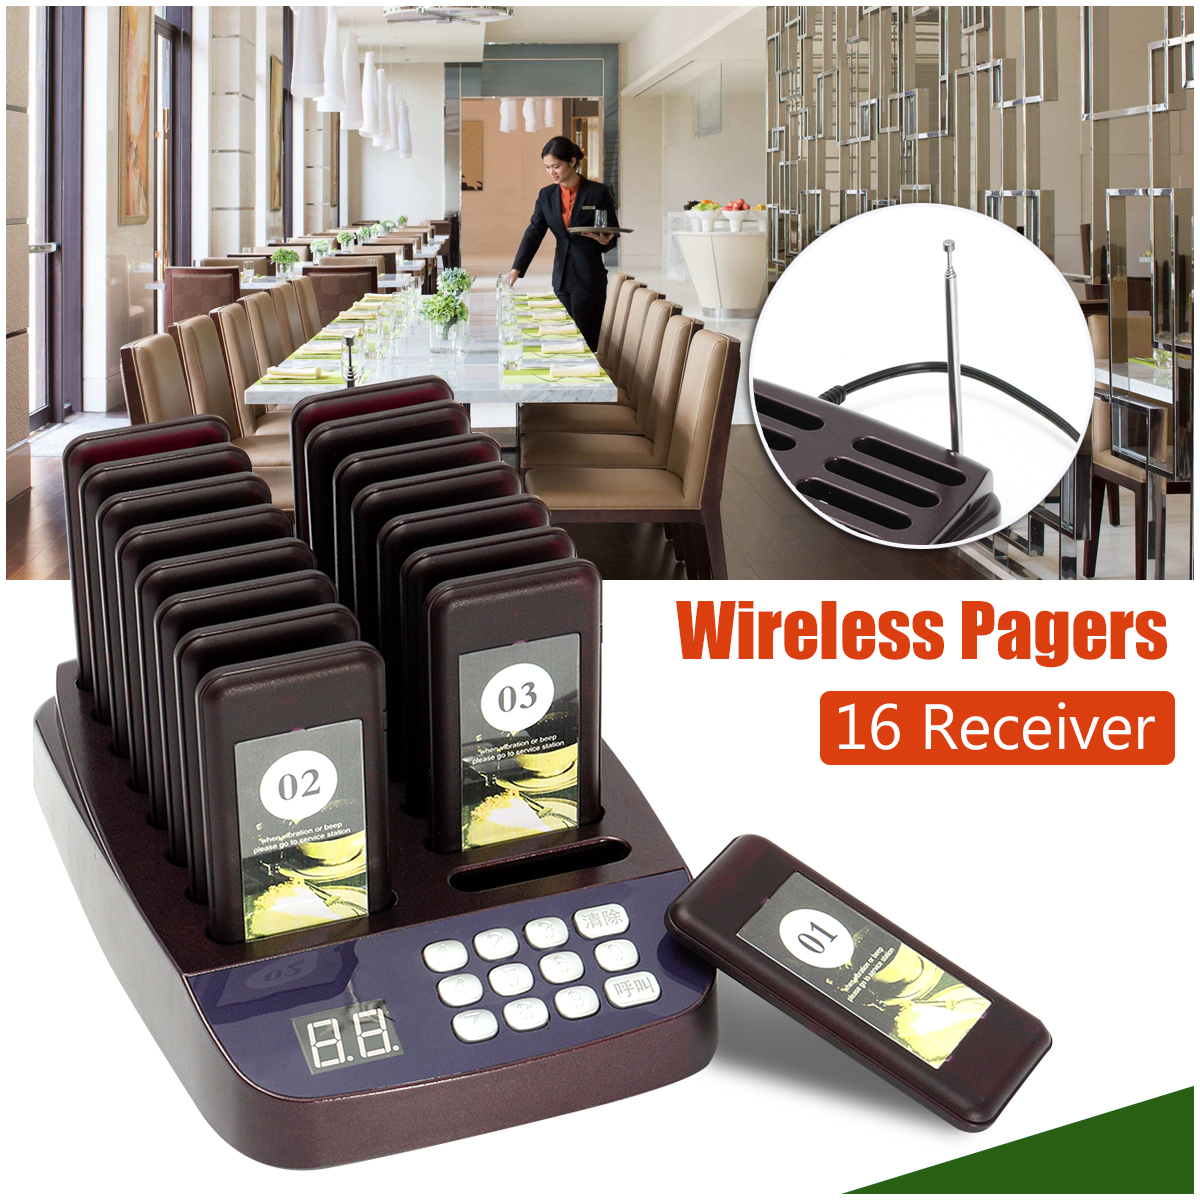 Restaurant Pager Wireless Paging Queuing System 1 Transmitter+16 Call Coaster Pagers 999 Channel Chargeable Restaurant Equipment tivdio wireless restaurant pager guest paging queuing system 1 transmitter 20 chargeable pagers restaurants equipments f9401a